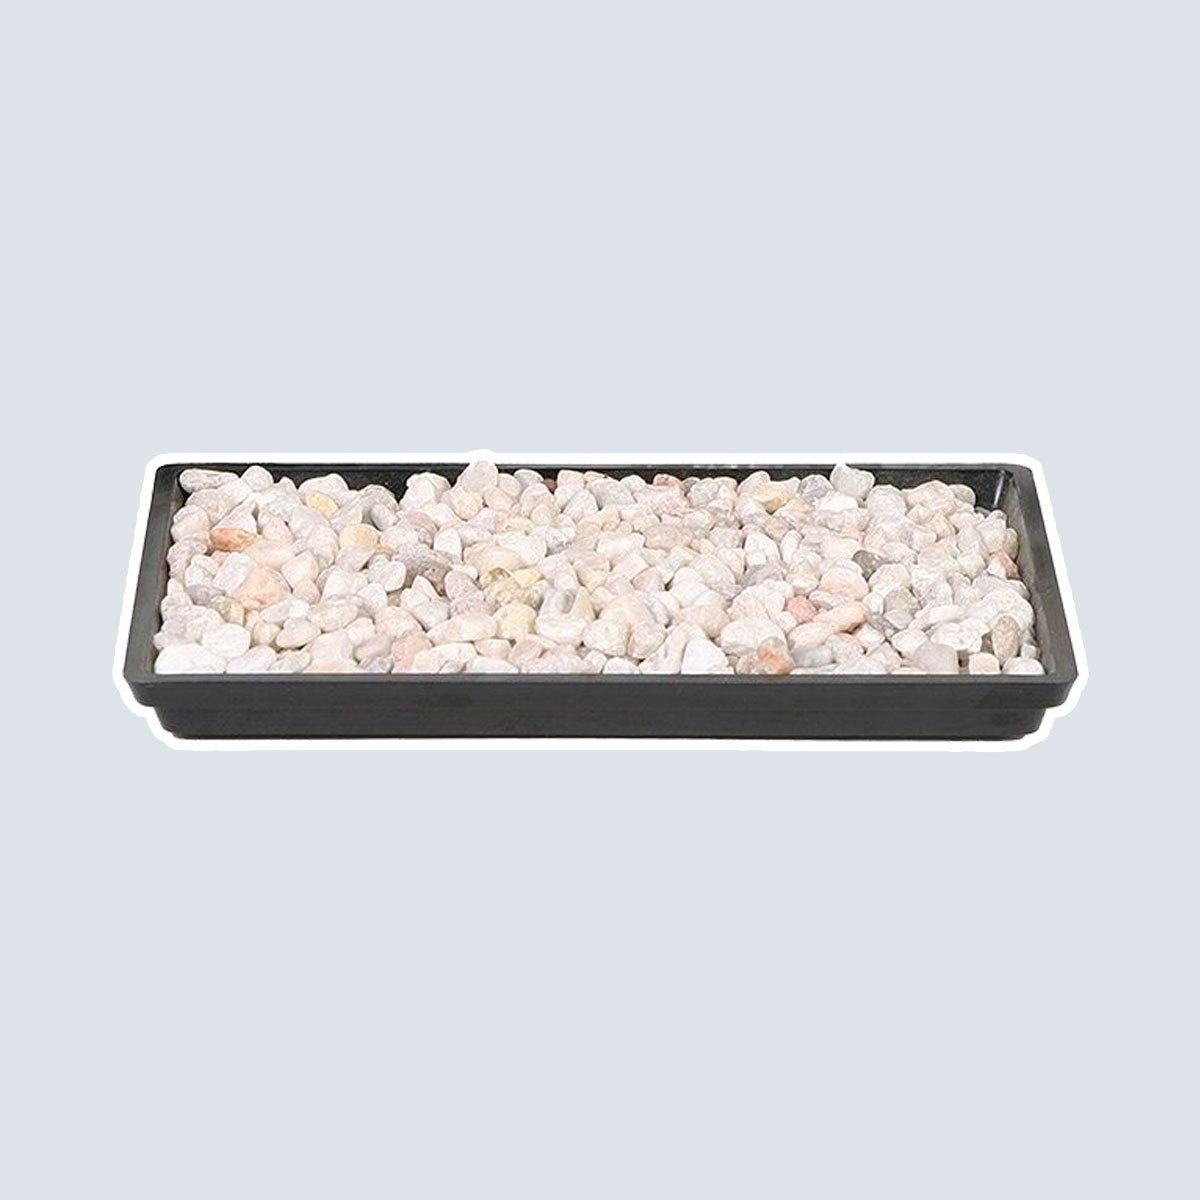 """Brussel's 8"""" Humidity Tray with Decorative Rocks"""